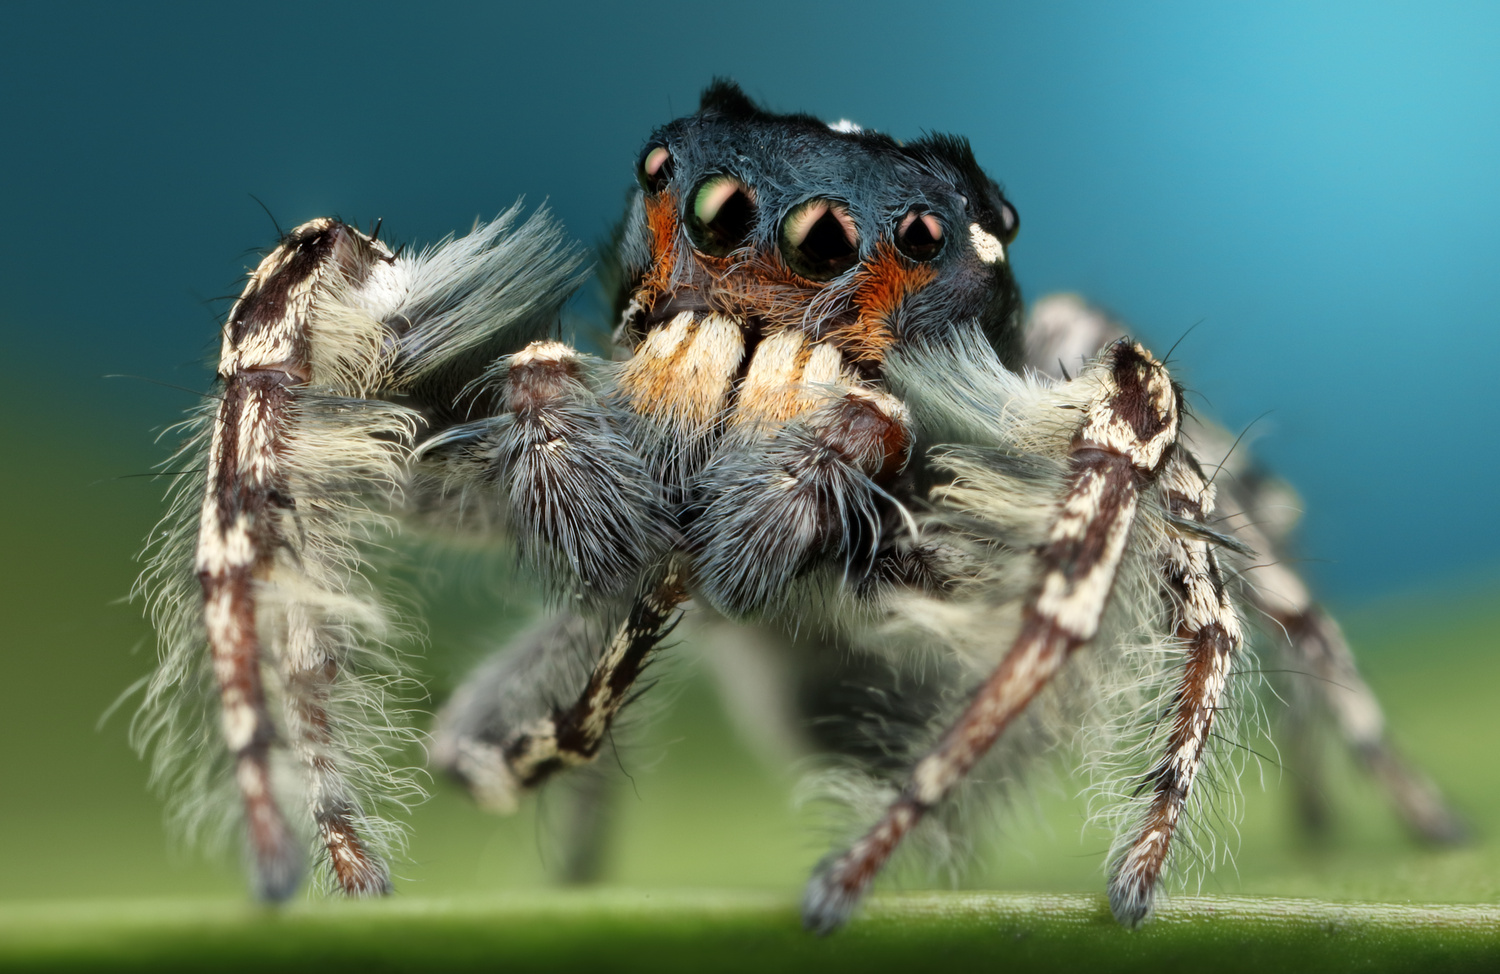 Male Phidippus Putnami  by Andres Moline